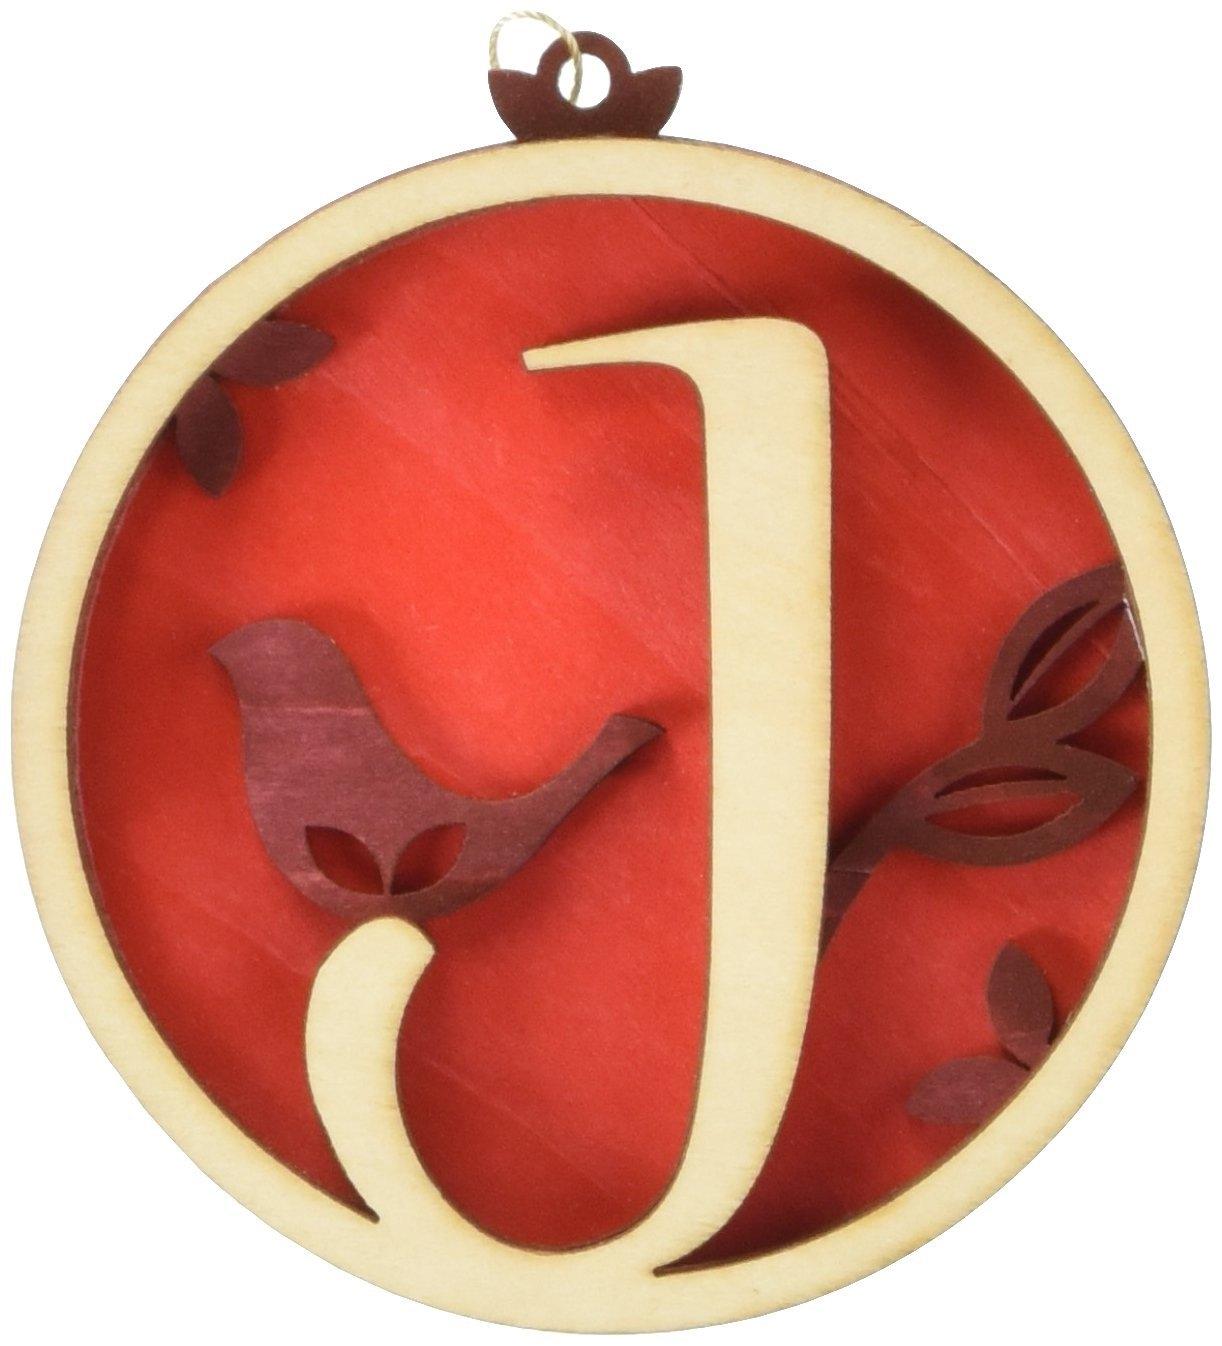 Enesco Flourish Letter J Monogramed Ornament, 3.2-Inch